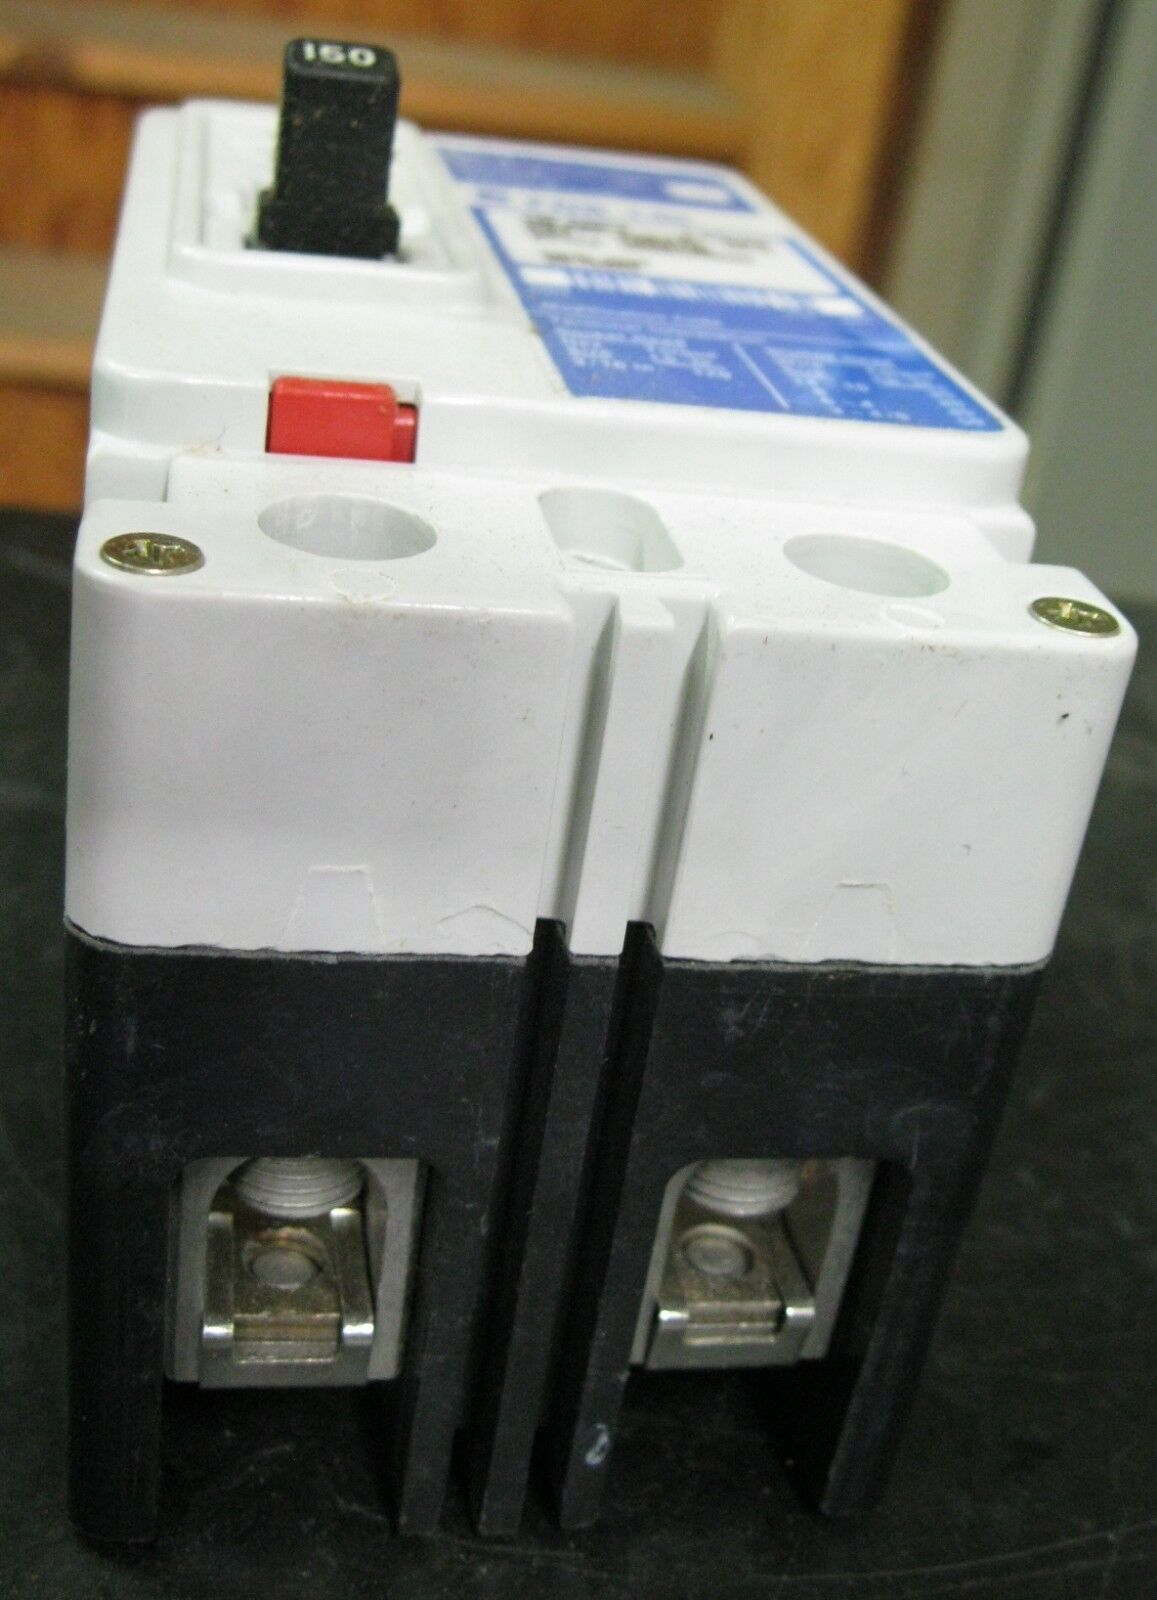 Cutler Hammer Fdb2150 Circuit Breaker Series C 150 Amps 2 Poles Ebay Installation With A Pb30 Inlet On Main